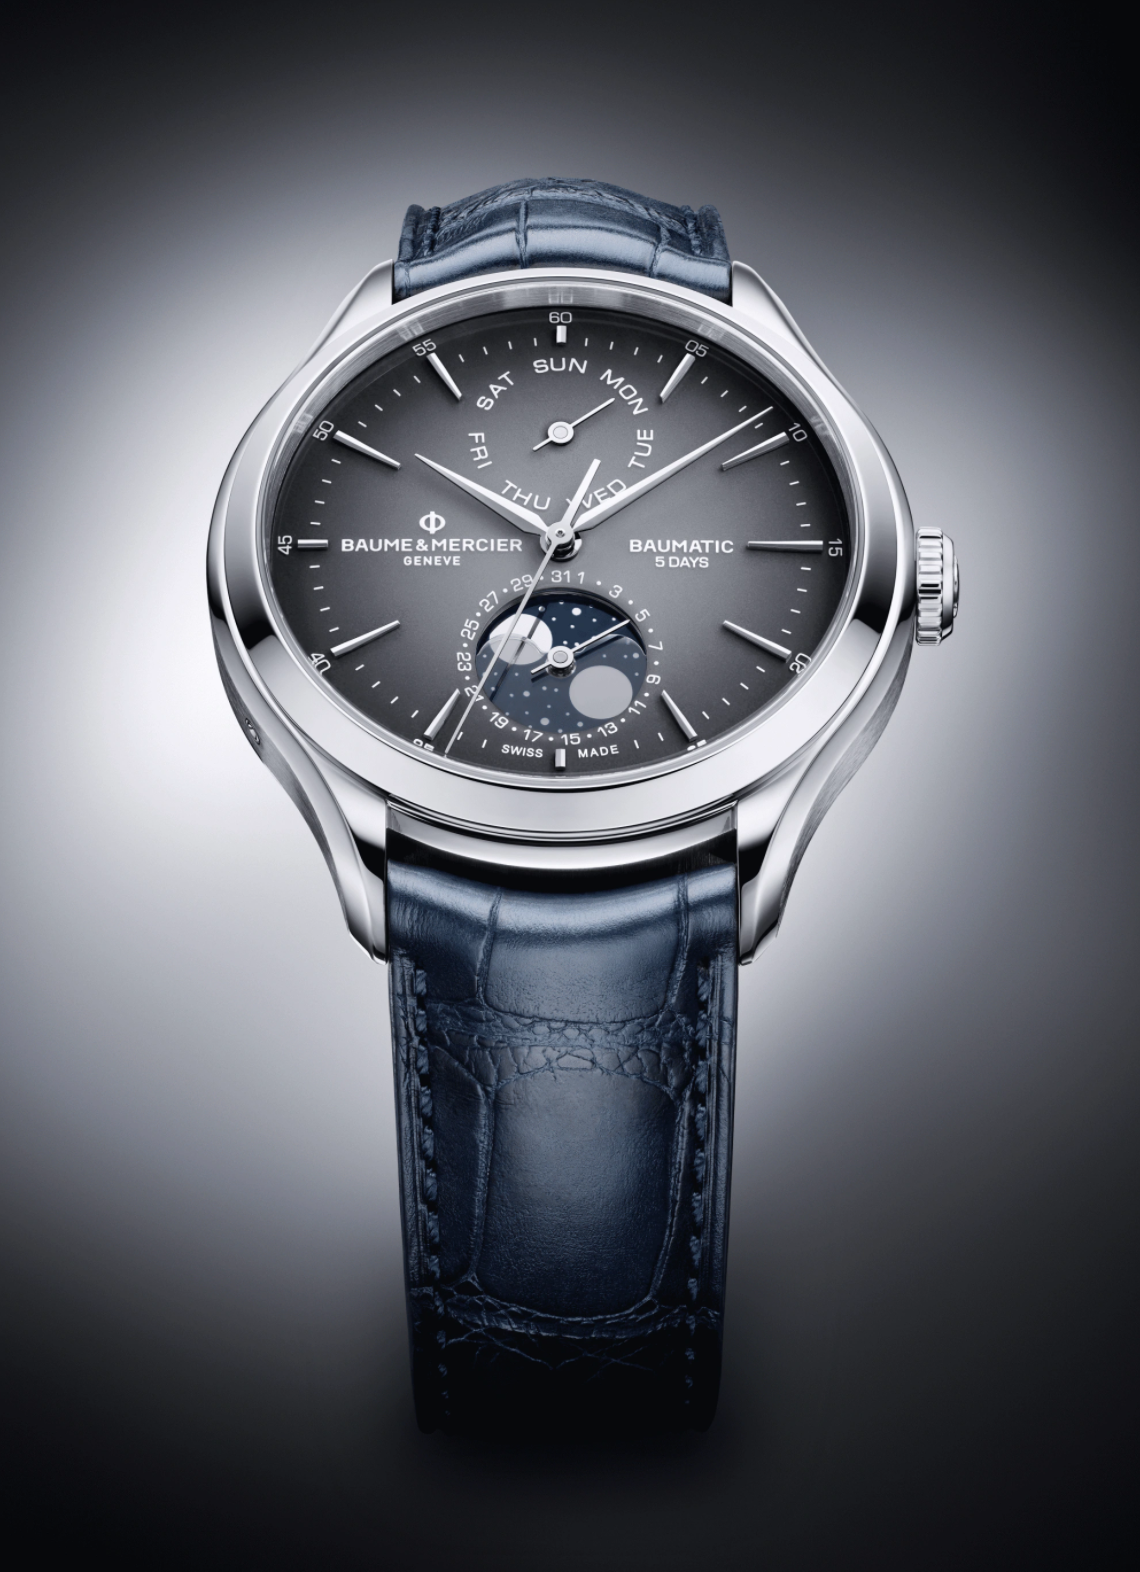 EDITOR'S PICK: Great value complications – the Clifton Baumatic Day-Date Moon-Phase